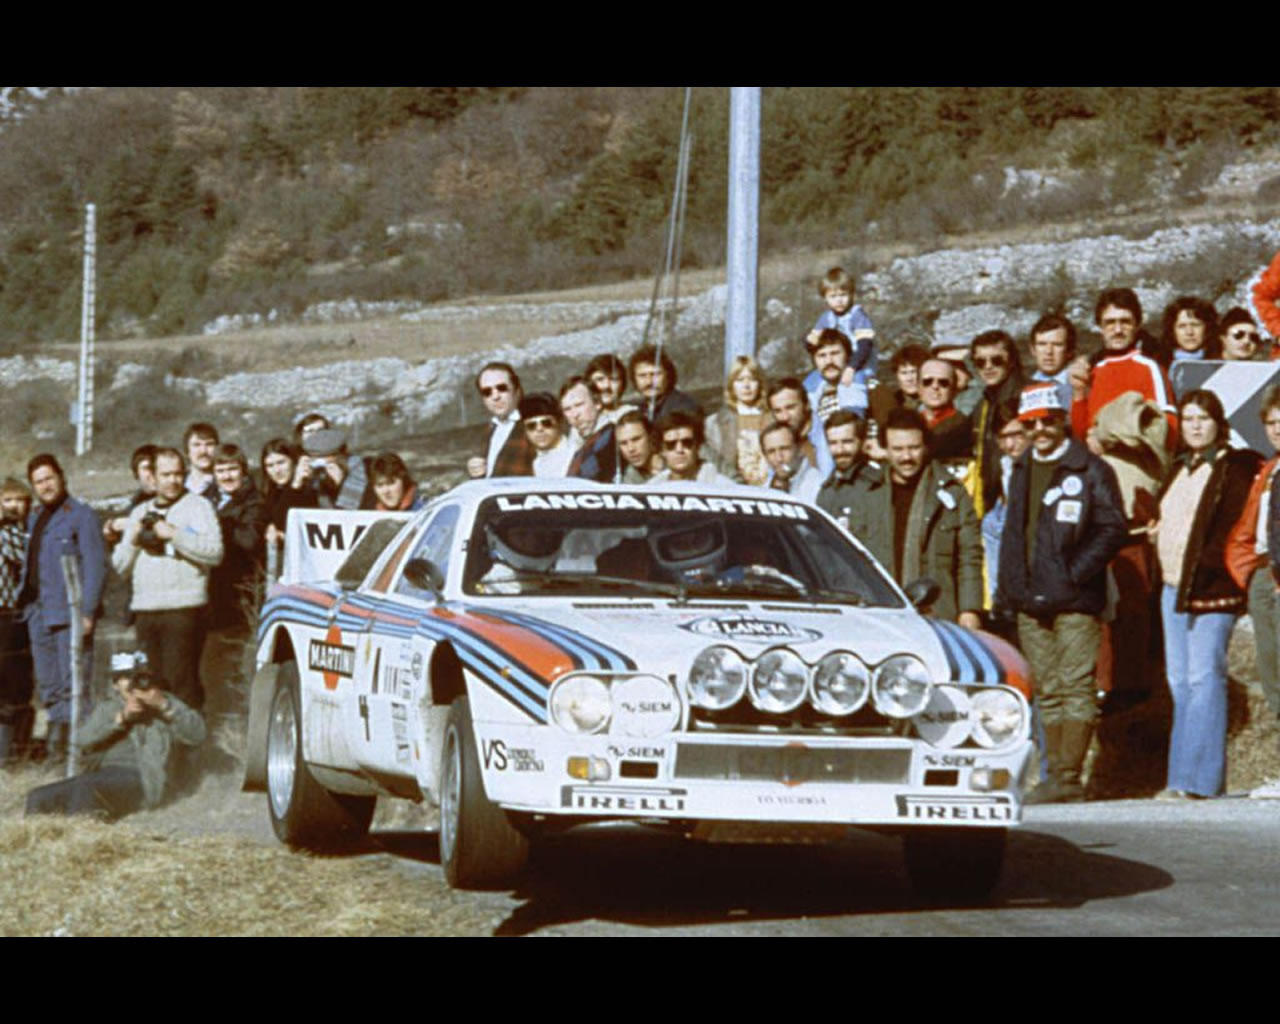 http://www.autoconcept-reviews.com/cars_reviews/lancia/lancia-rally-037-stradale-group-b-1980-84/wallpapers/lancia-rally-037-stradale-group-b-1980-843.jpg